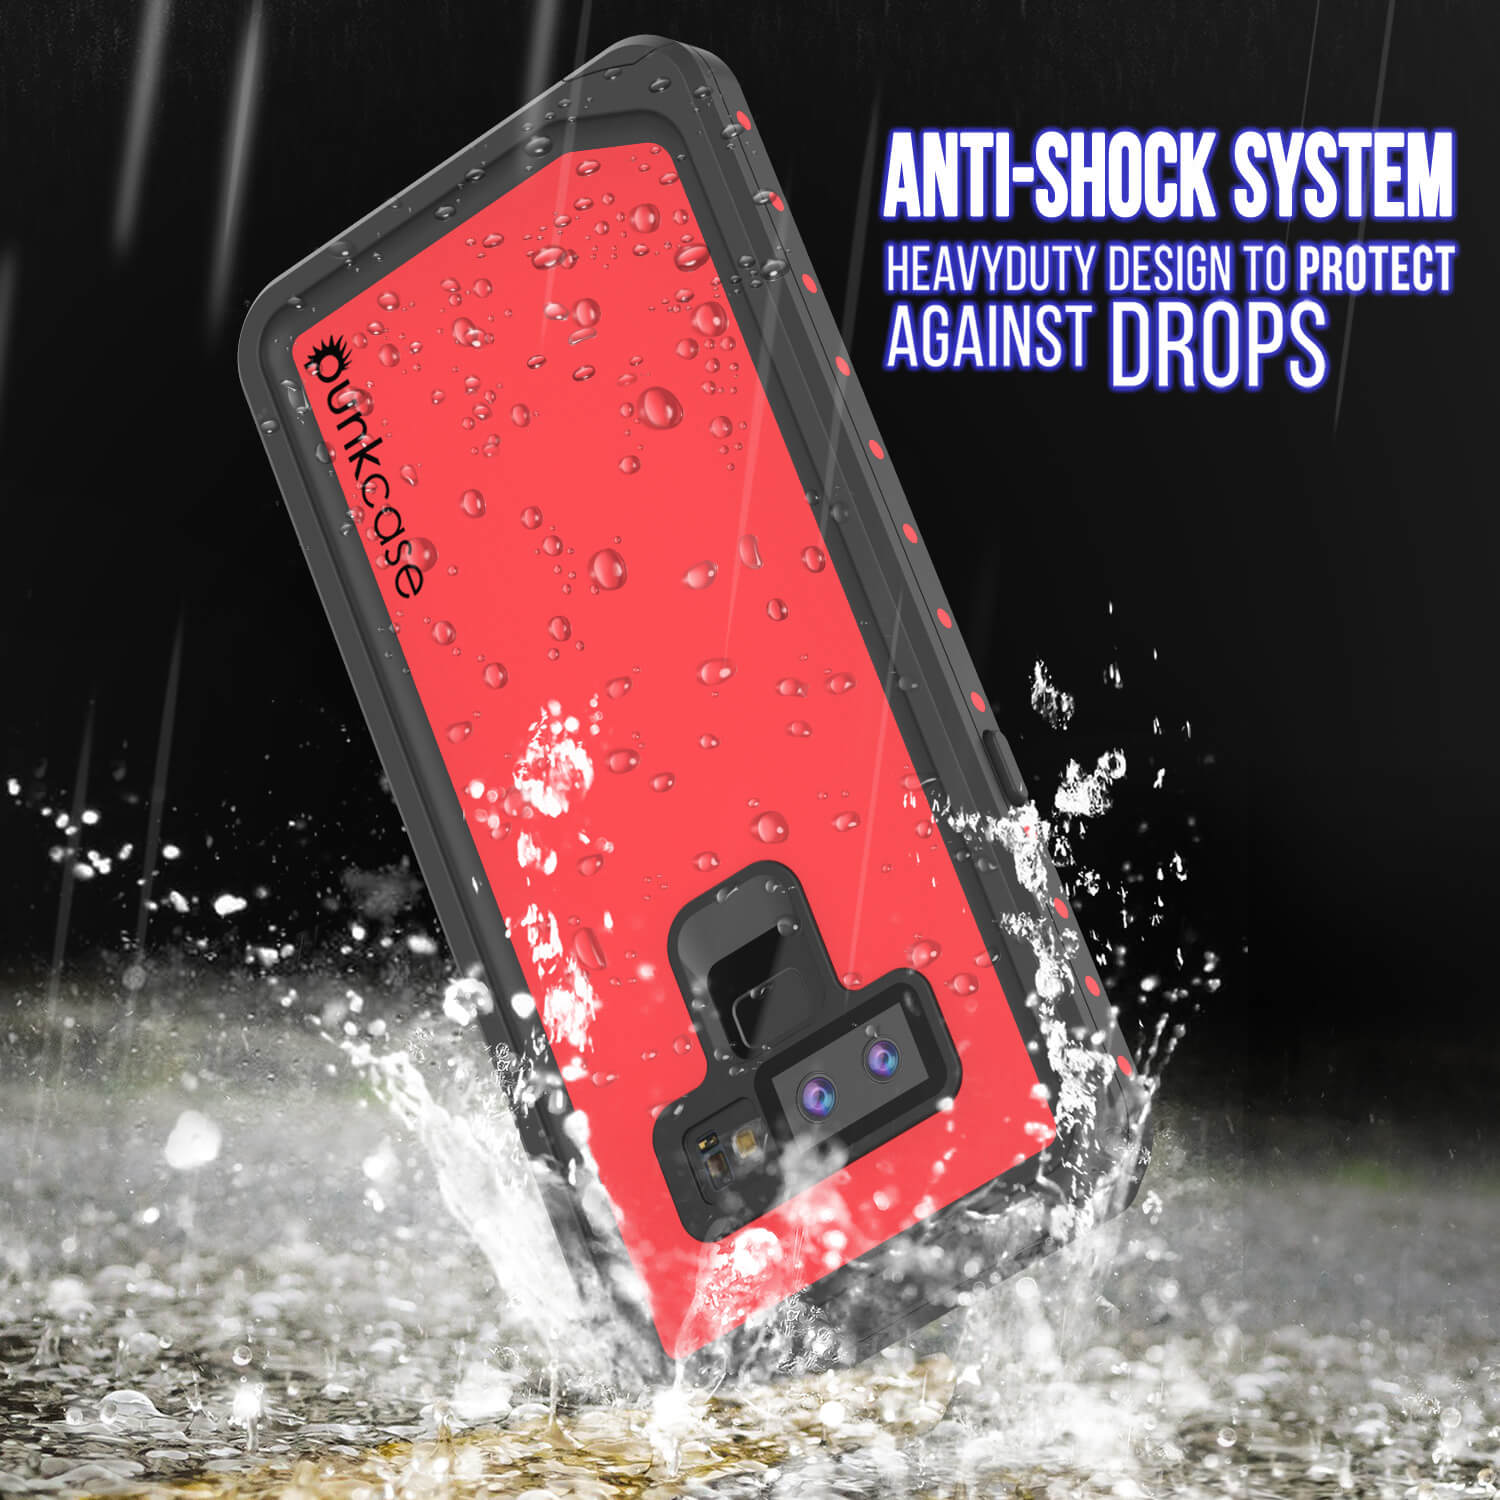 Galaxy Note 9 Waterproof Case PunkCase StudStar Red Thin 6.6ft Underwater Shock/Snow Proof